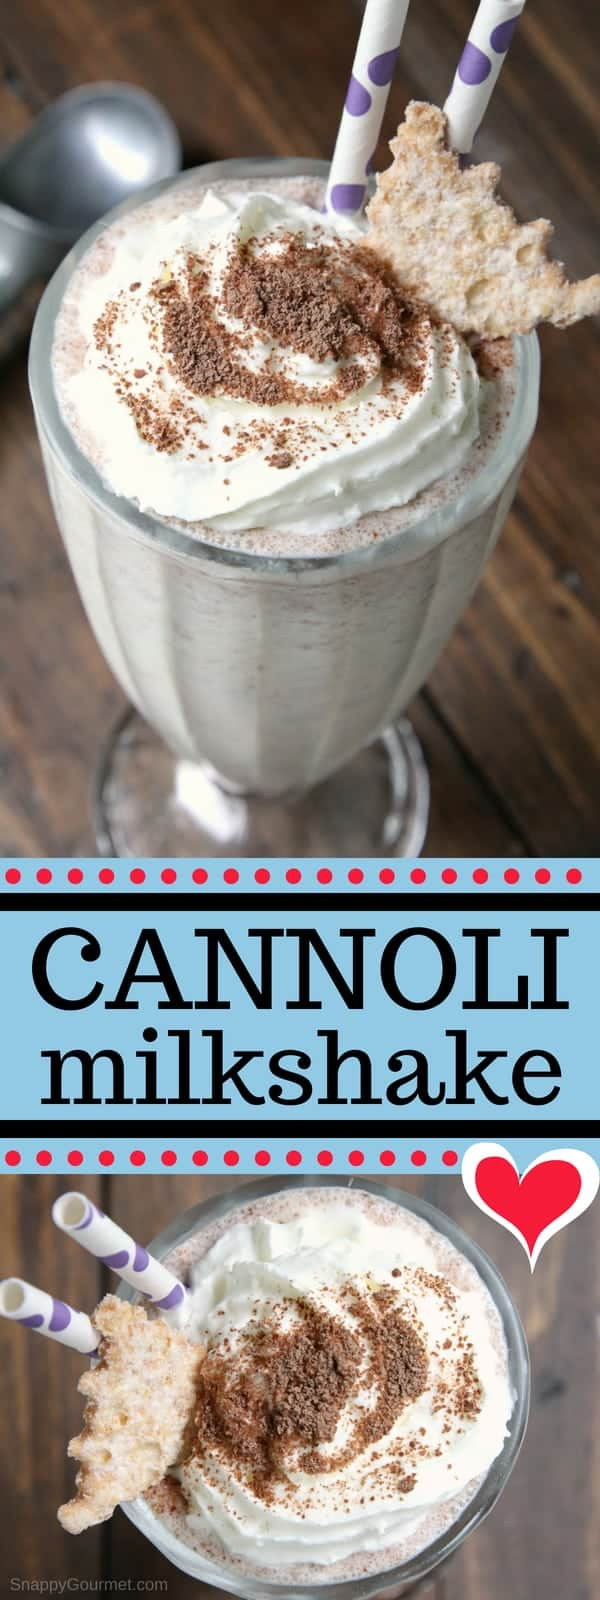 Homemade Cannoli Milkshake - fun milkshake recipe with vanilla, ricotta, orange, and chocolate!